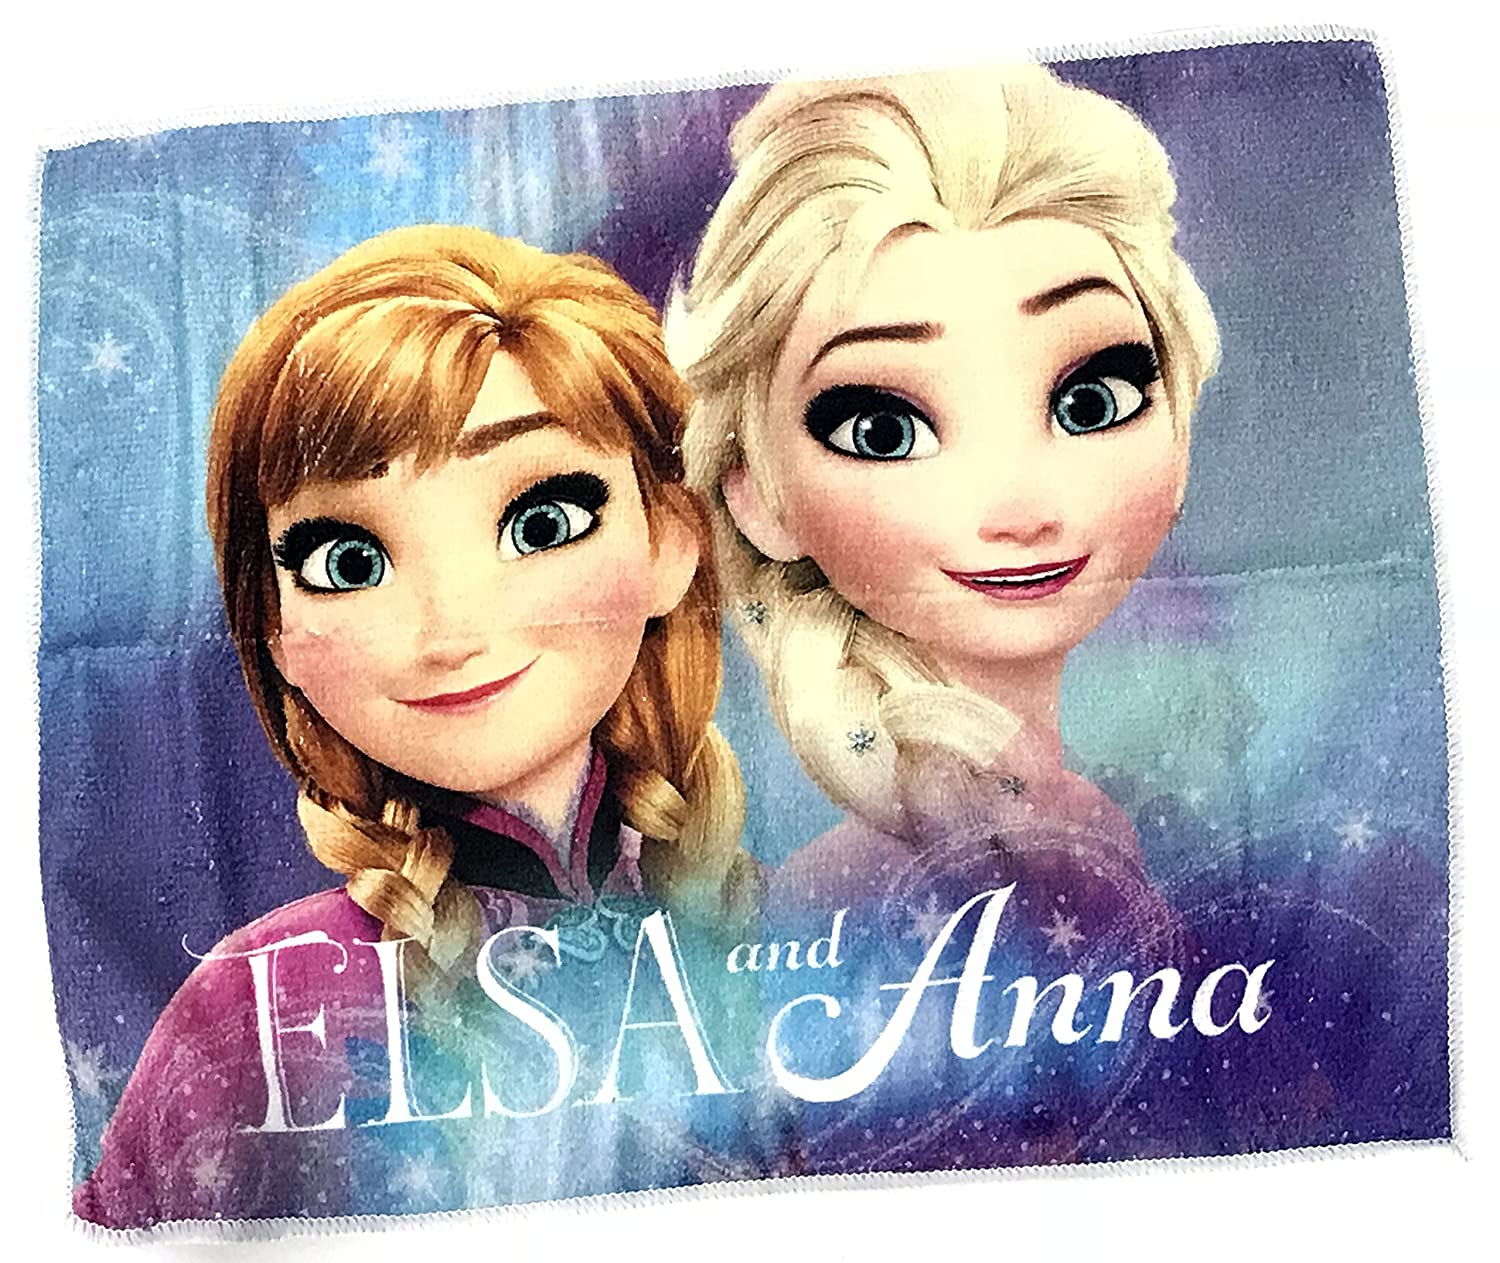 Disney Frozen – Bath Towel, wd19475 Disney Frozen - Bath Towel KIDS EUROSWAN